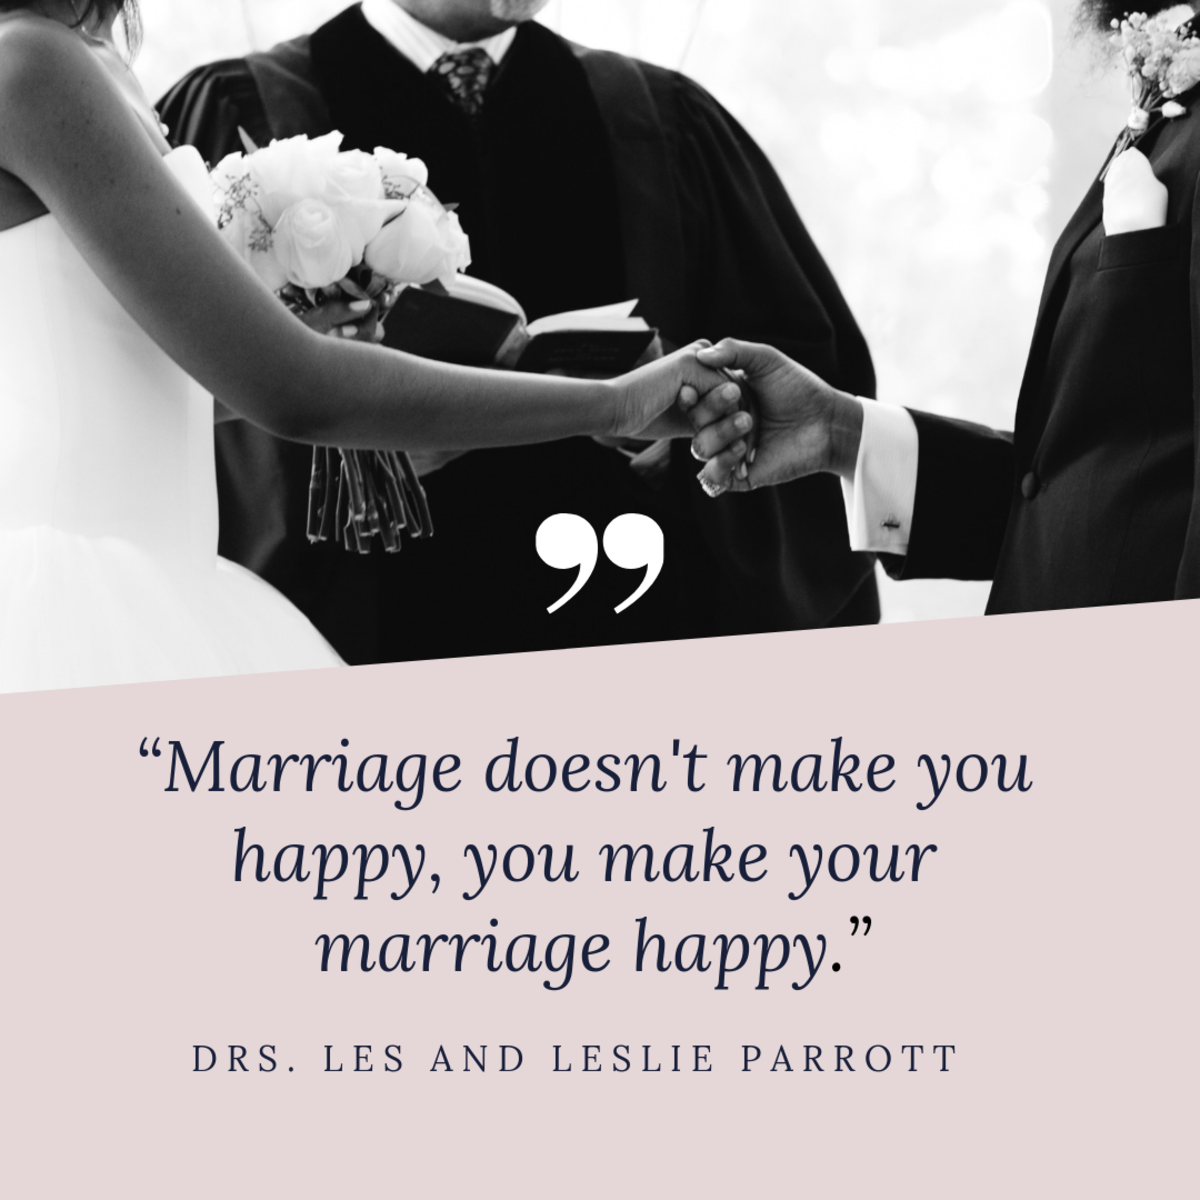 Marriages take work.